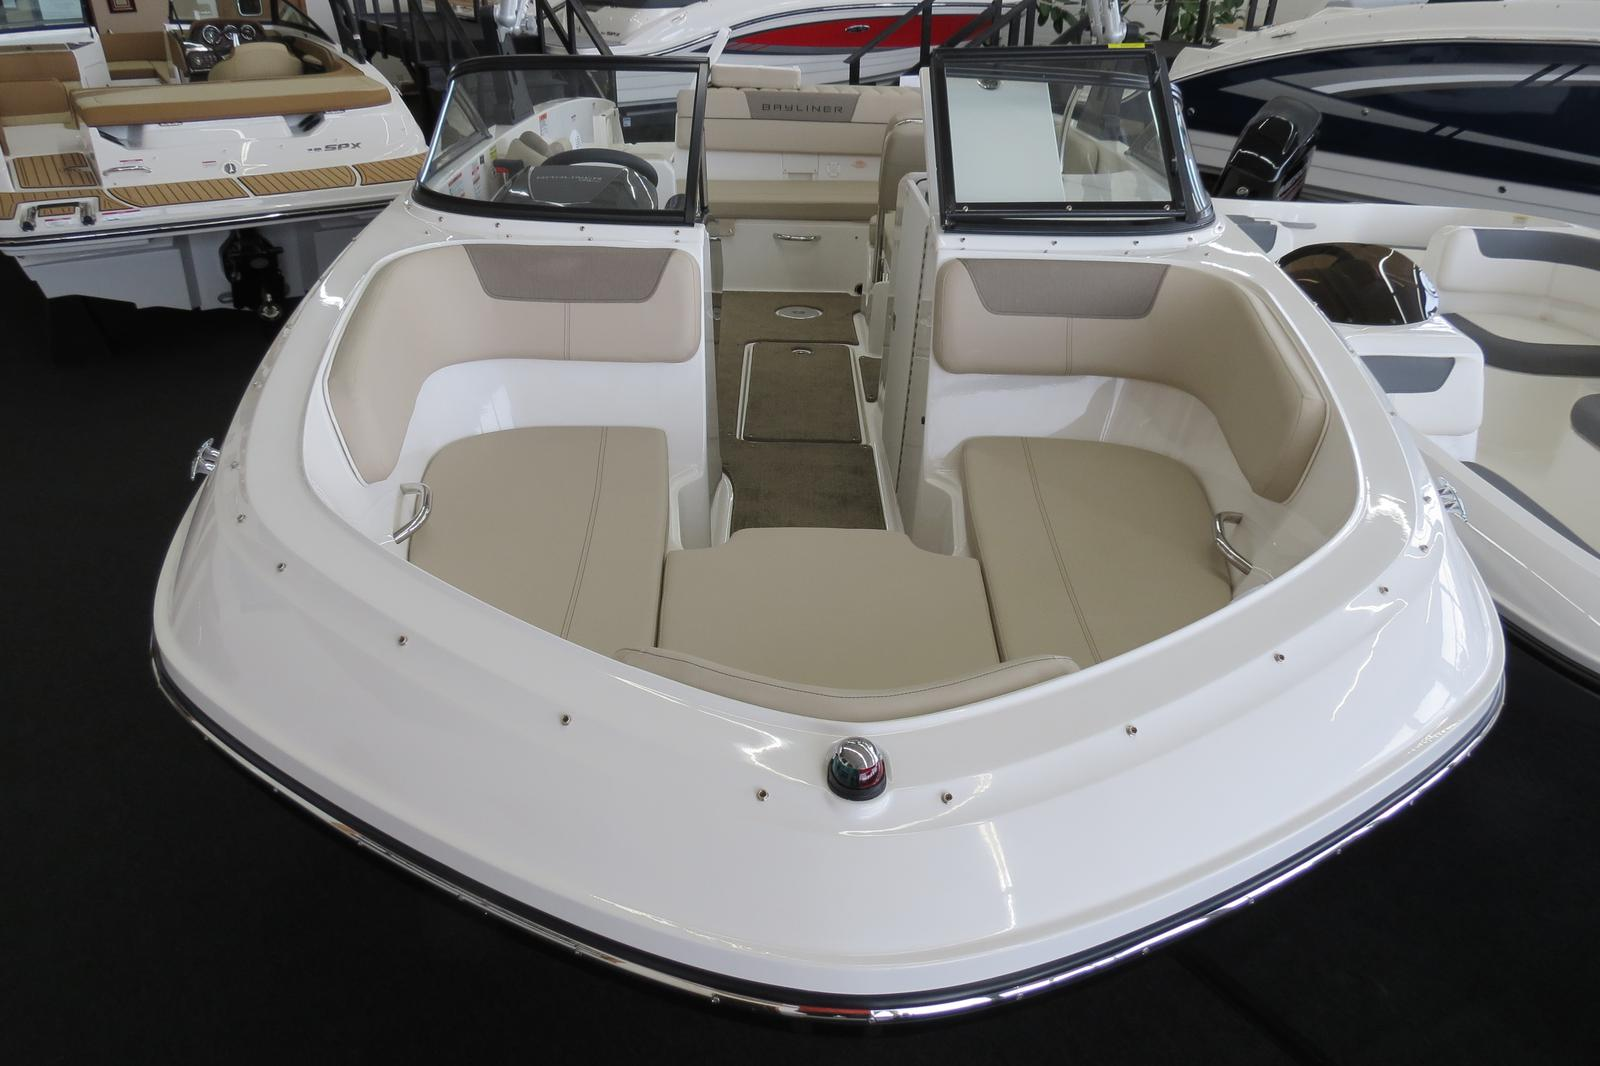 2019 Bayliner boat for sale, model of the boat is VR6 Bowrider & Image # 2 of 7